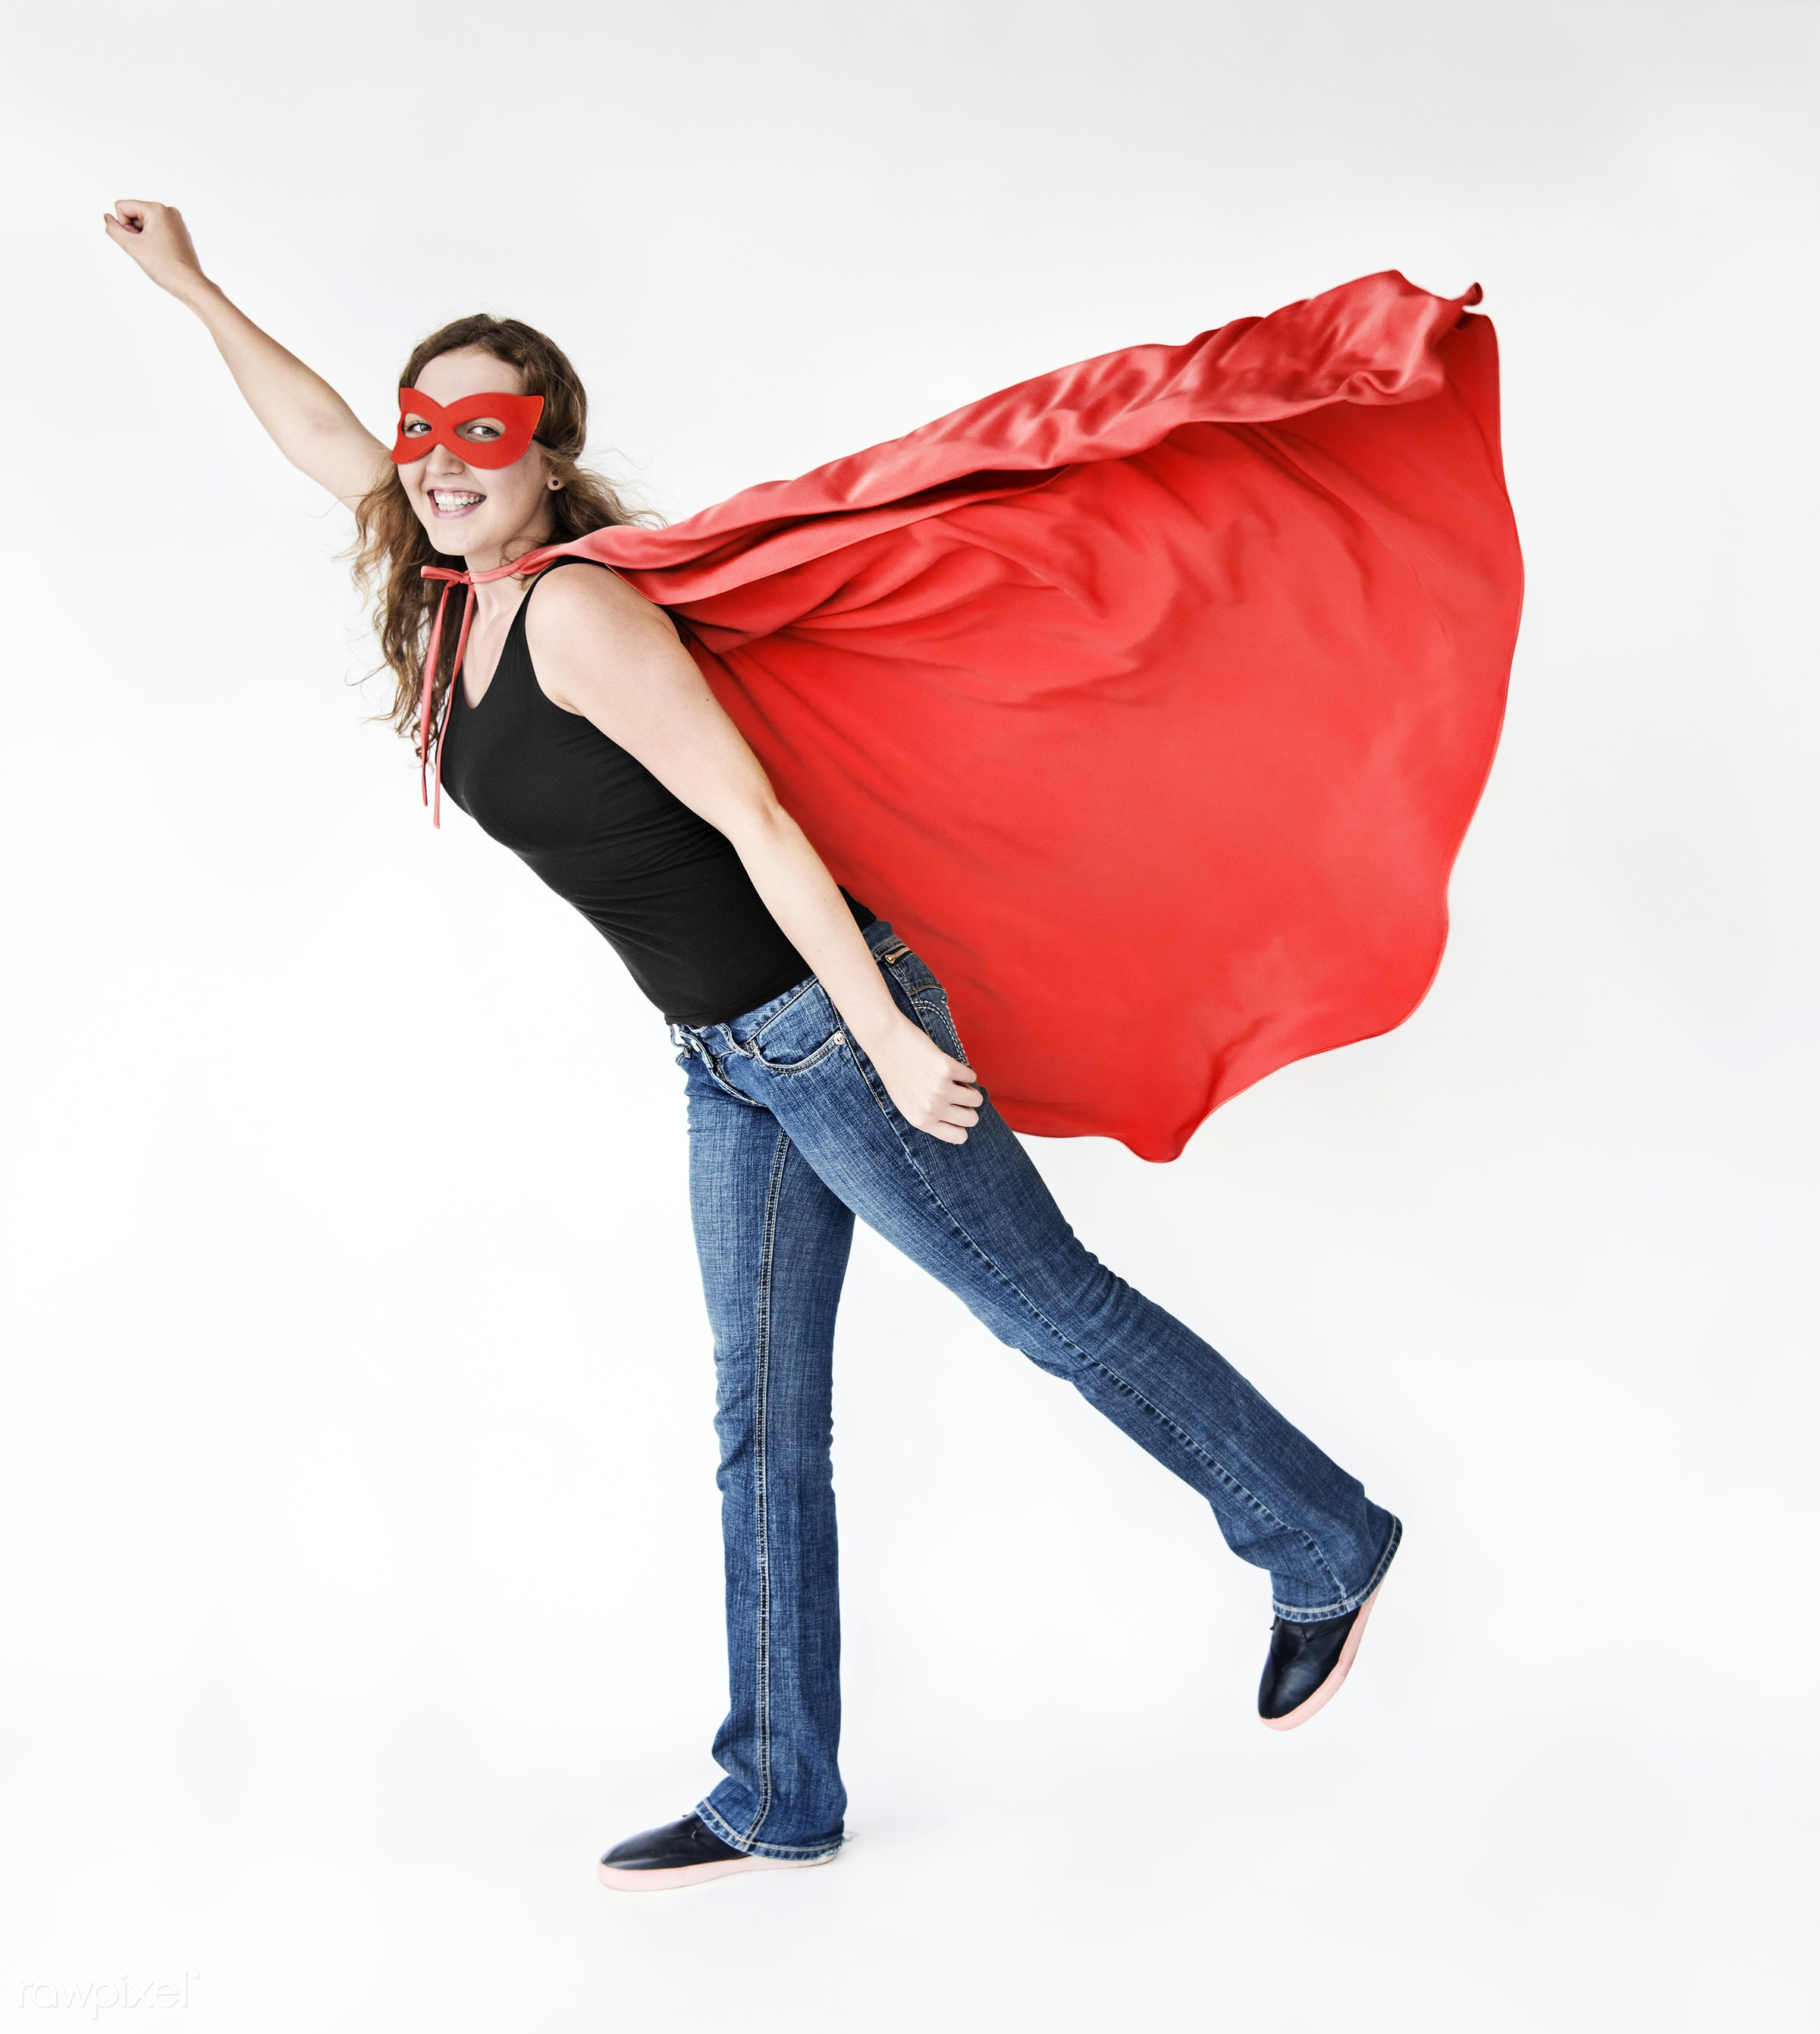 Girl in red superhero costime - super, superman, achievement, adult, casual, challenge, cheerful, cloak, confidence,...